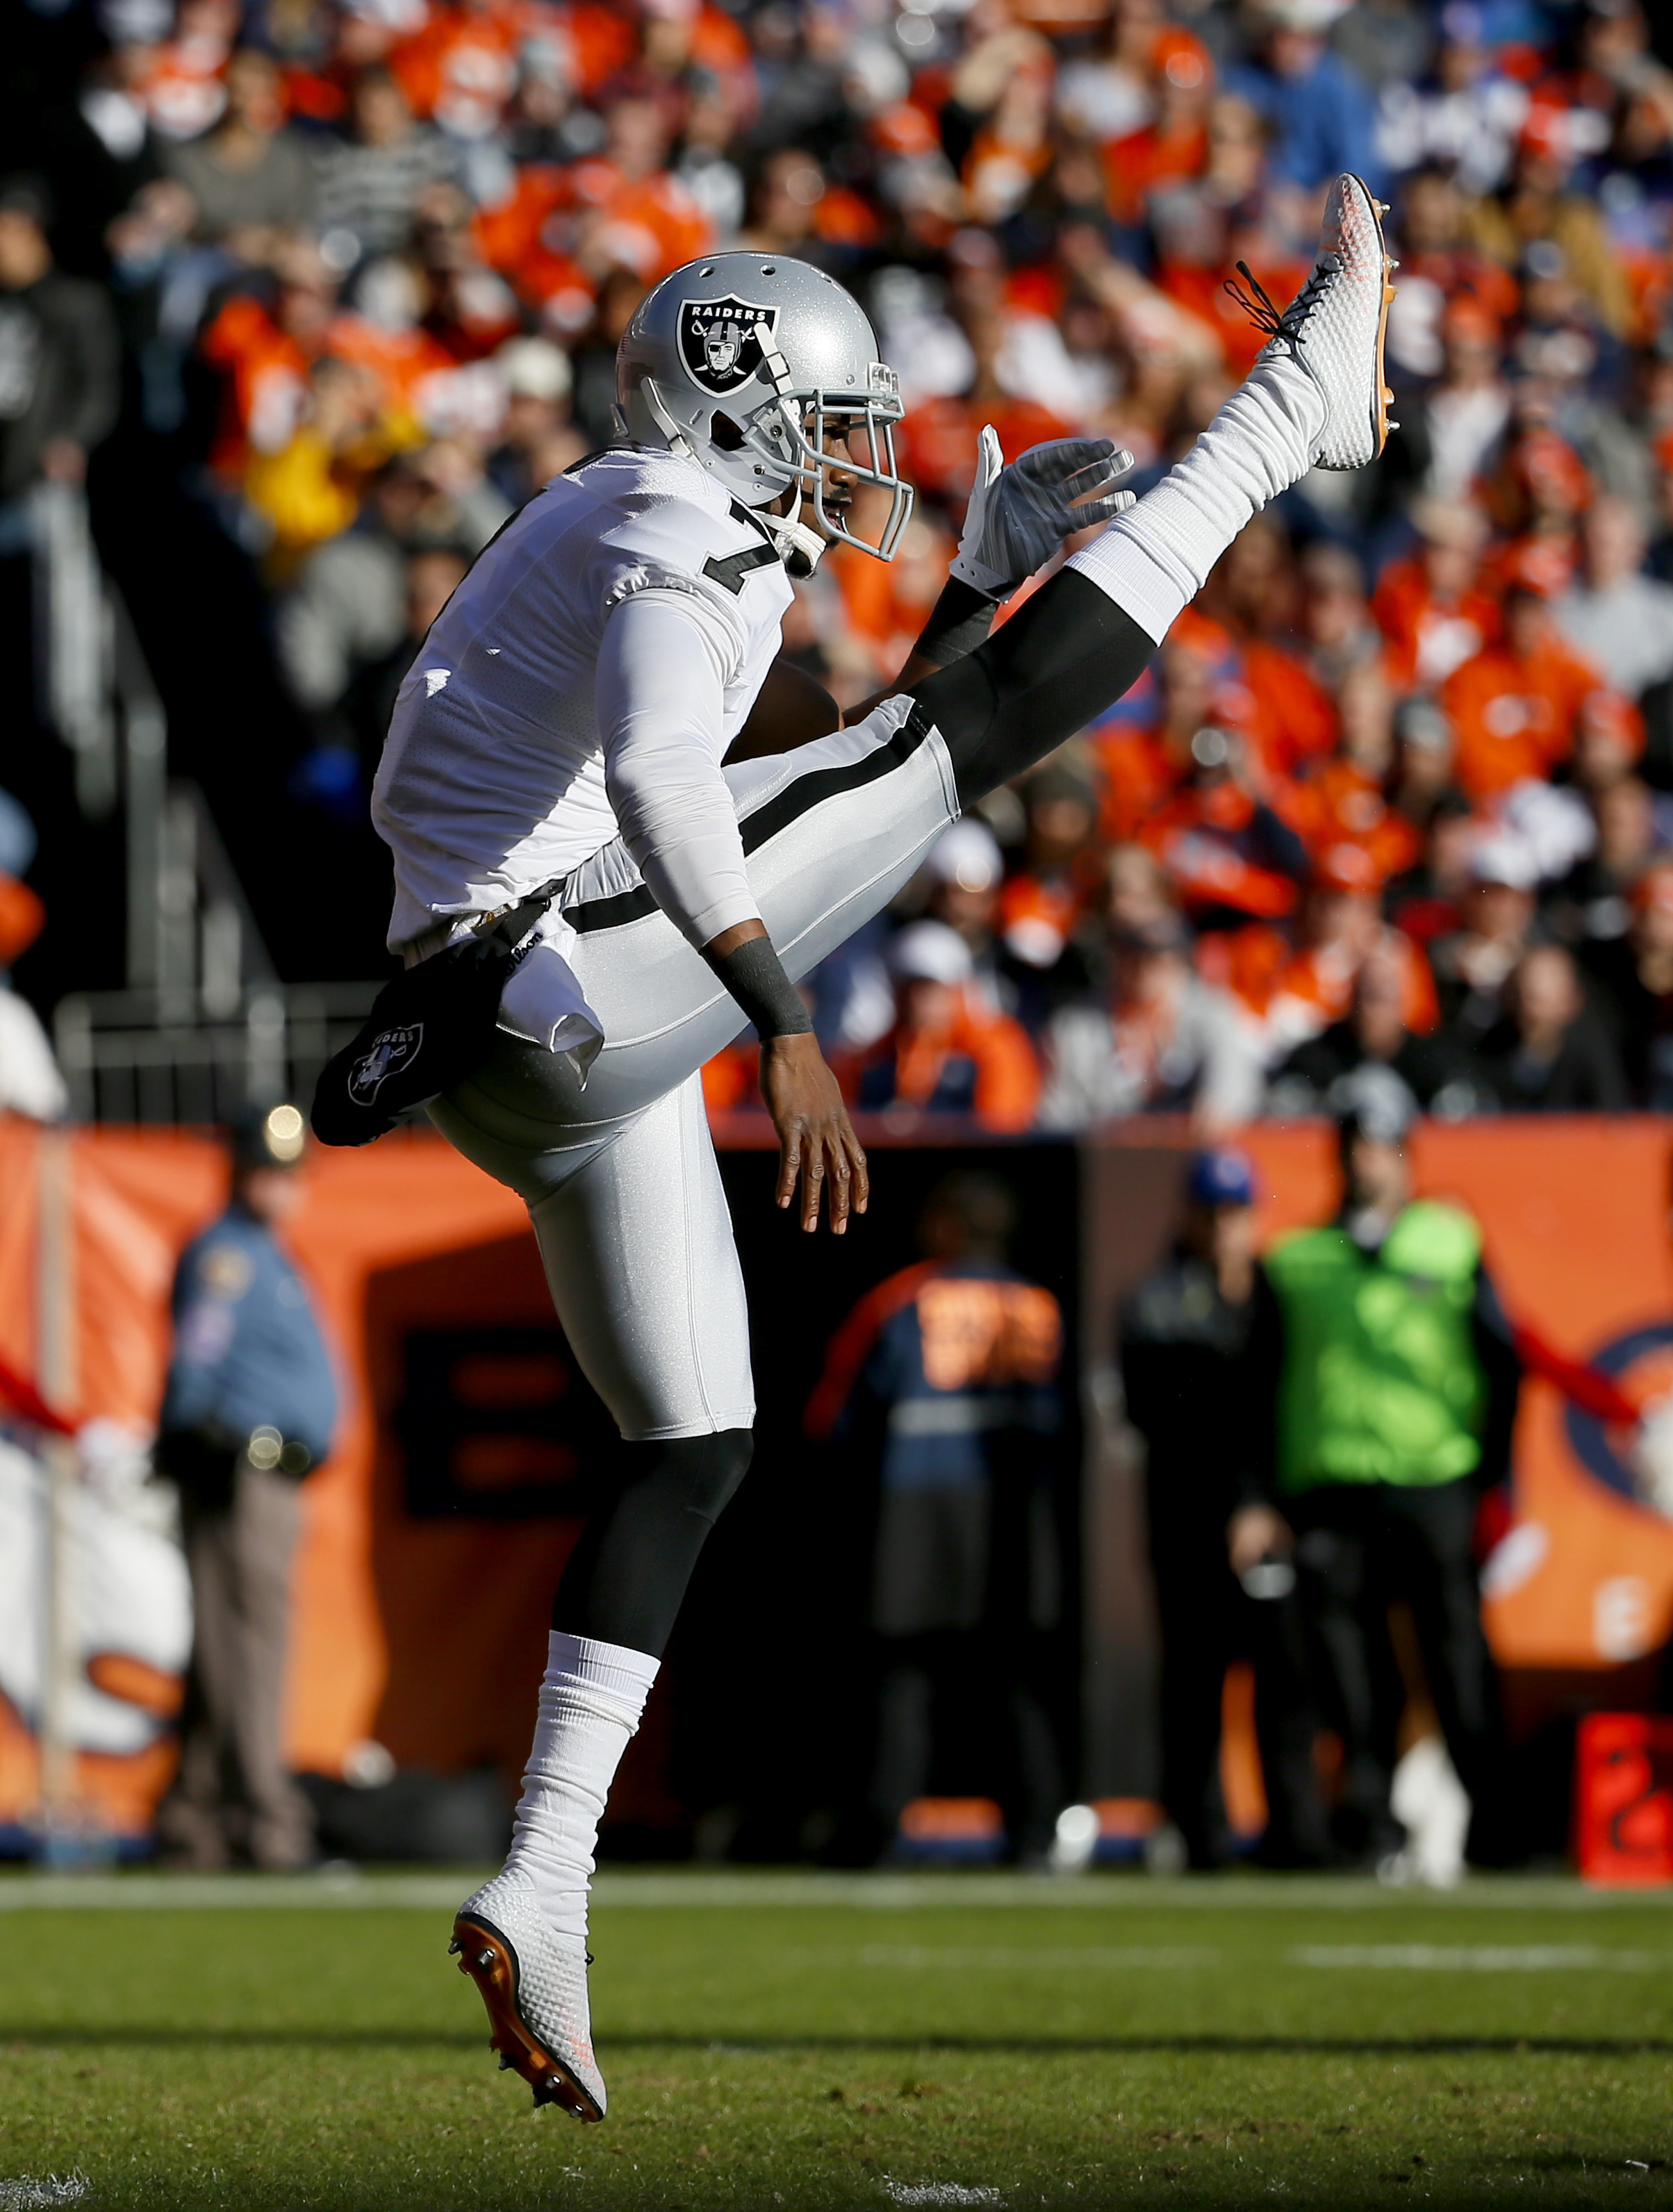 FILE - In this Dec. 13, 2015, file photo, Oakland Raiders punter Marquette King (7) punts against the Denver Broncos during the first half of an NFL football game, in Denver. With five punts inside the 20, Marquette King was an unsung hero for the Raiders